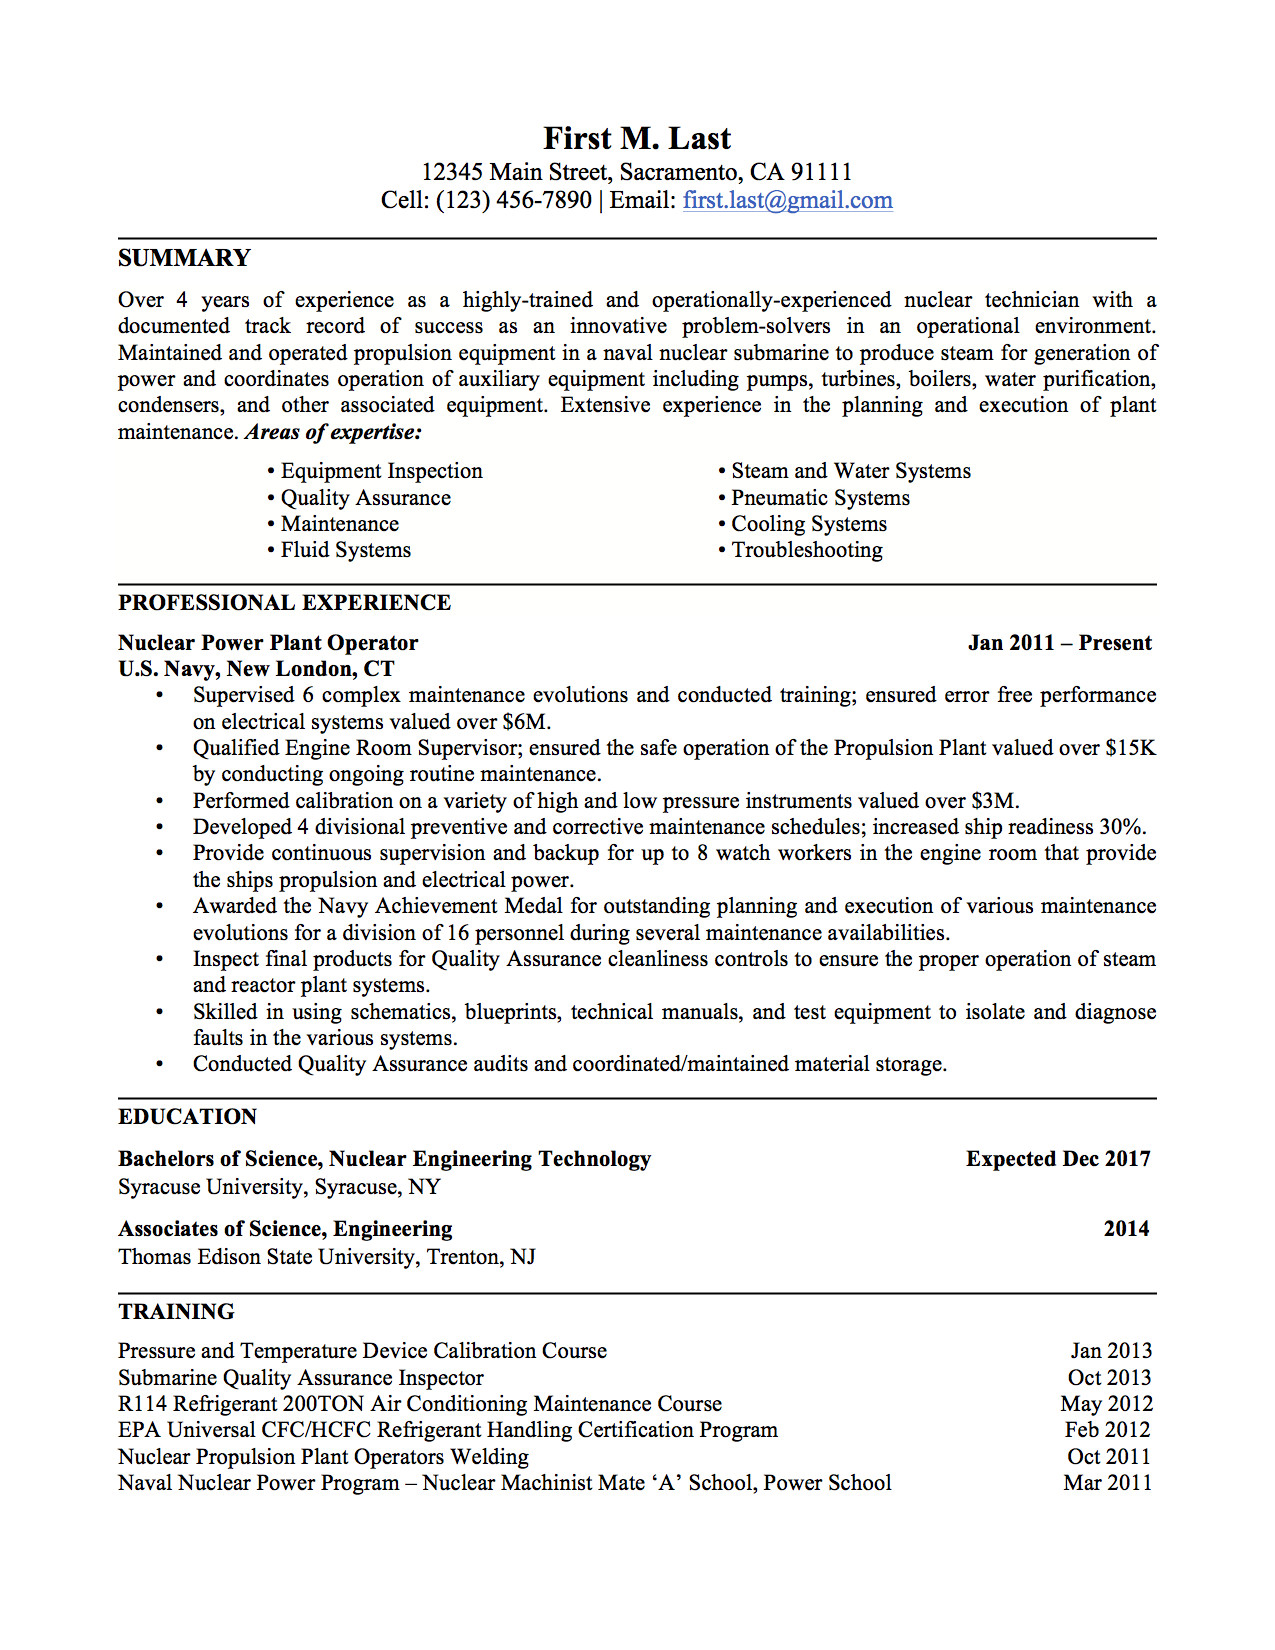 Military to Civilian Resume Template Military to Civilian Resume Examples